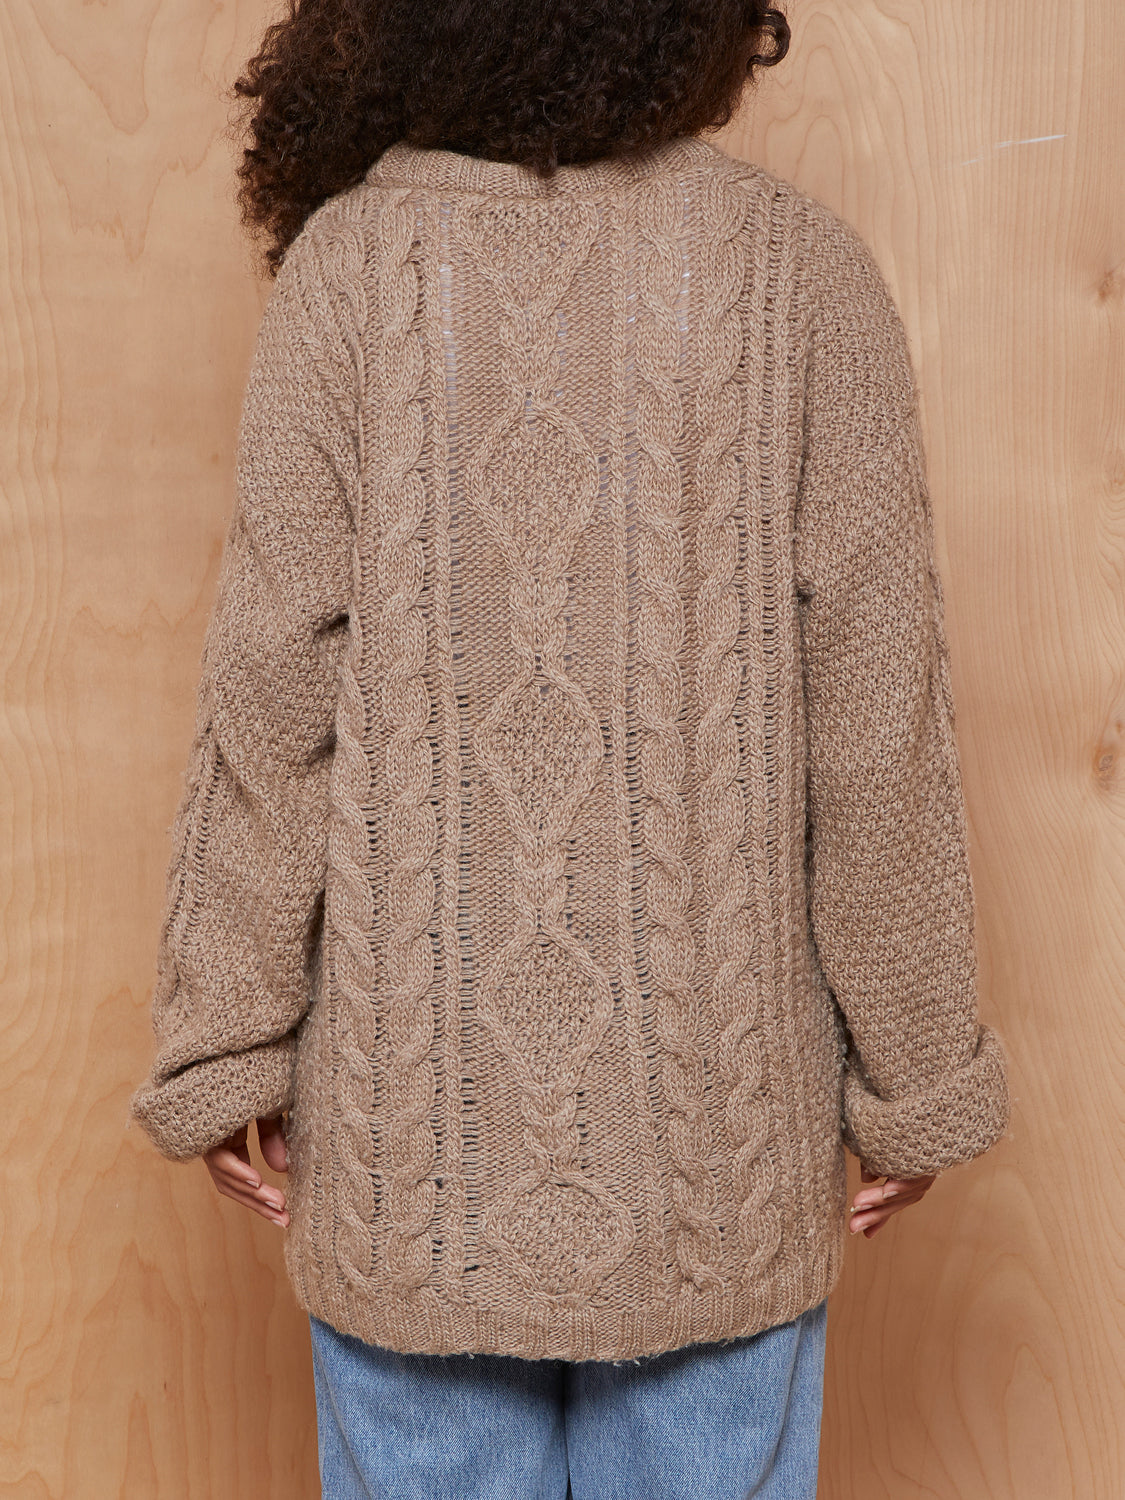 Top Shop Chunky Beige Sweater